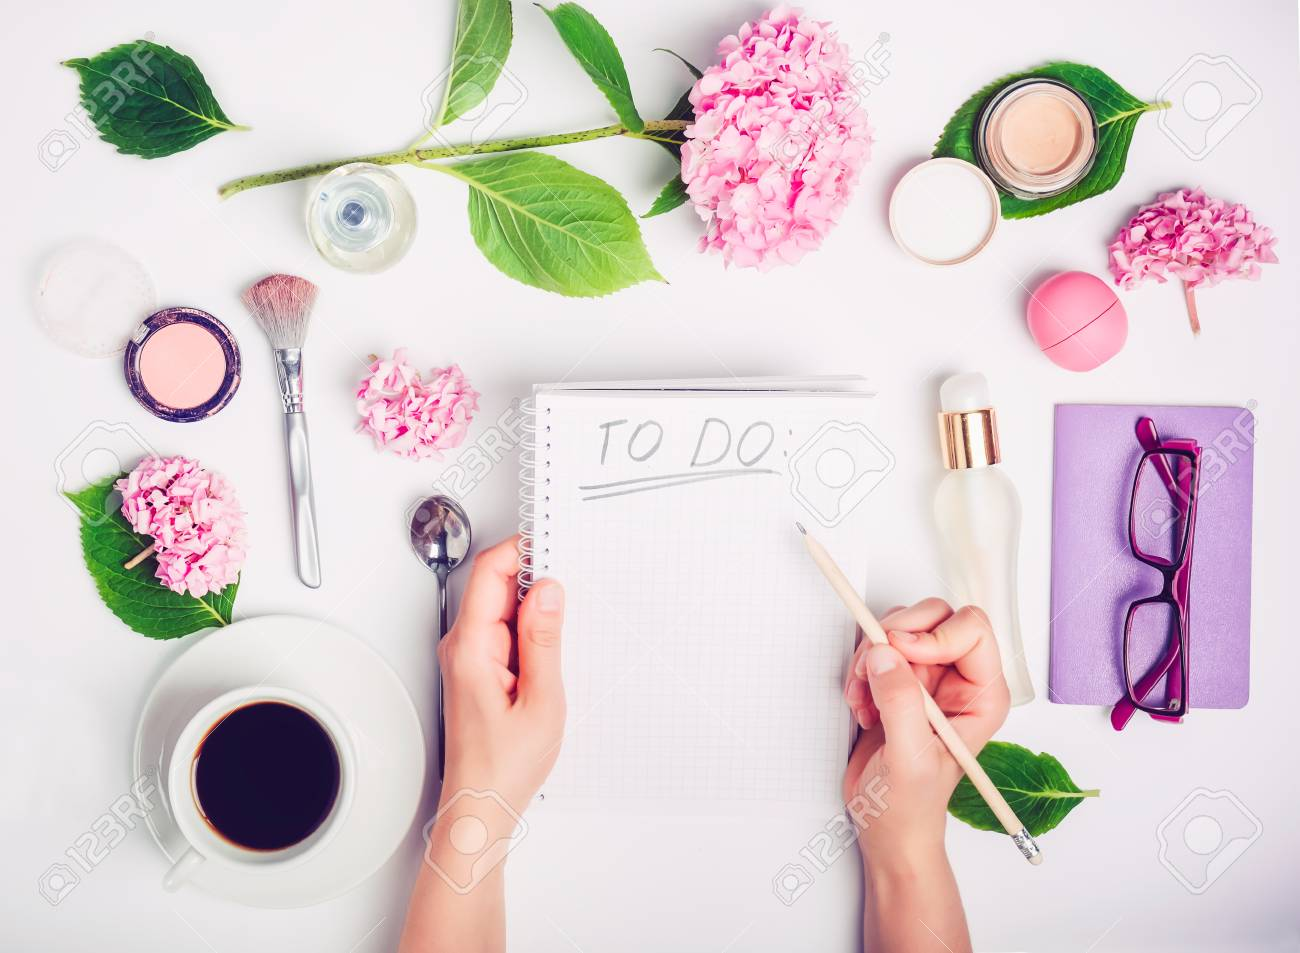 Female hands write To do list on the white working place with